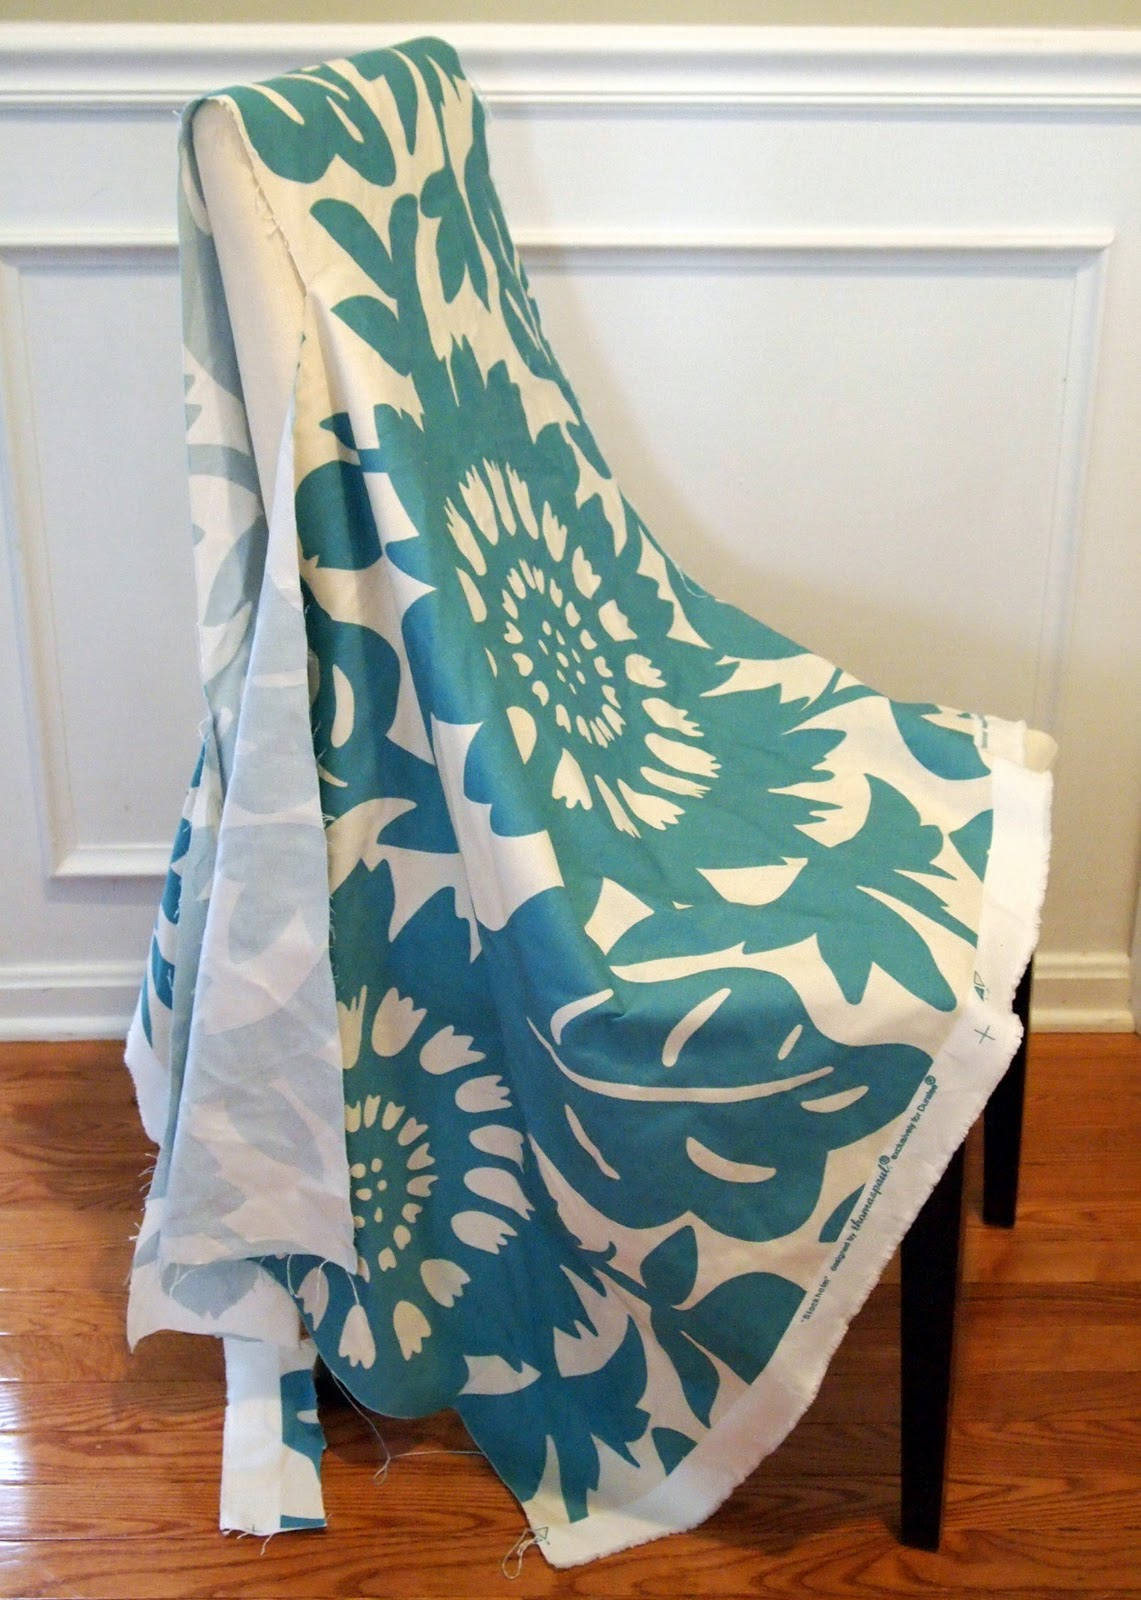 How to sew a chair